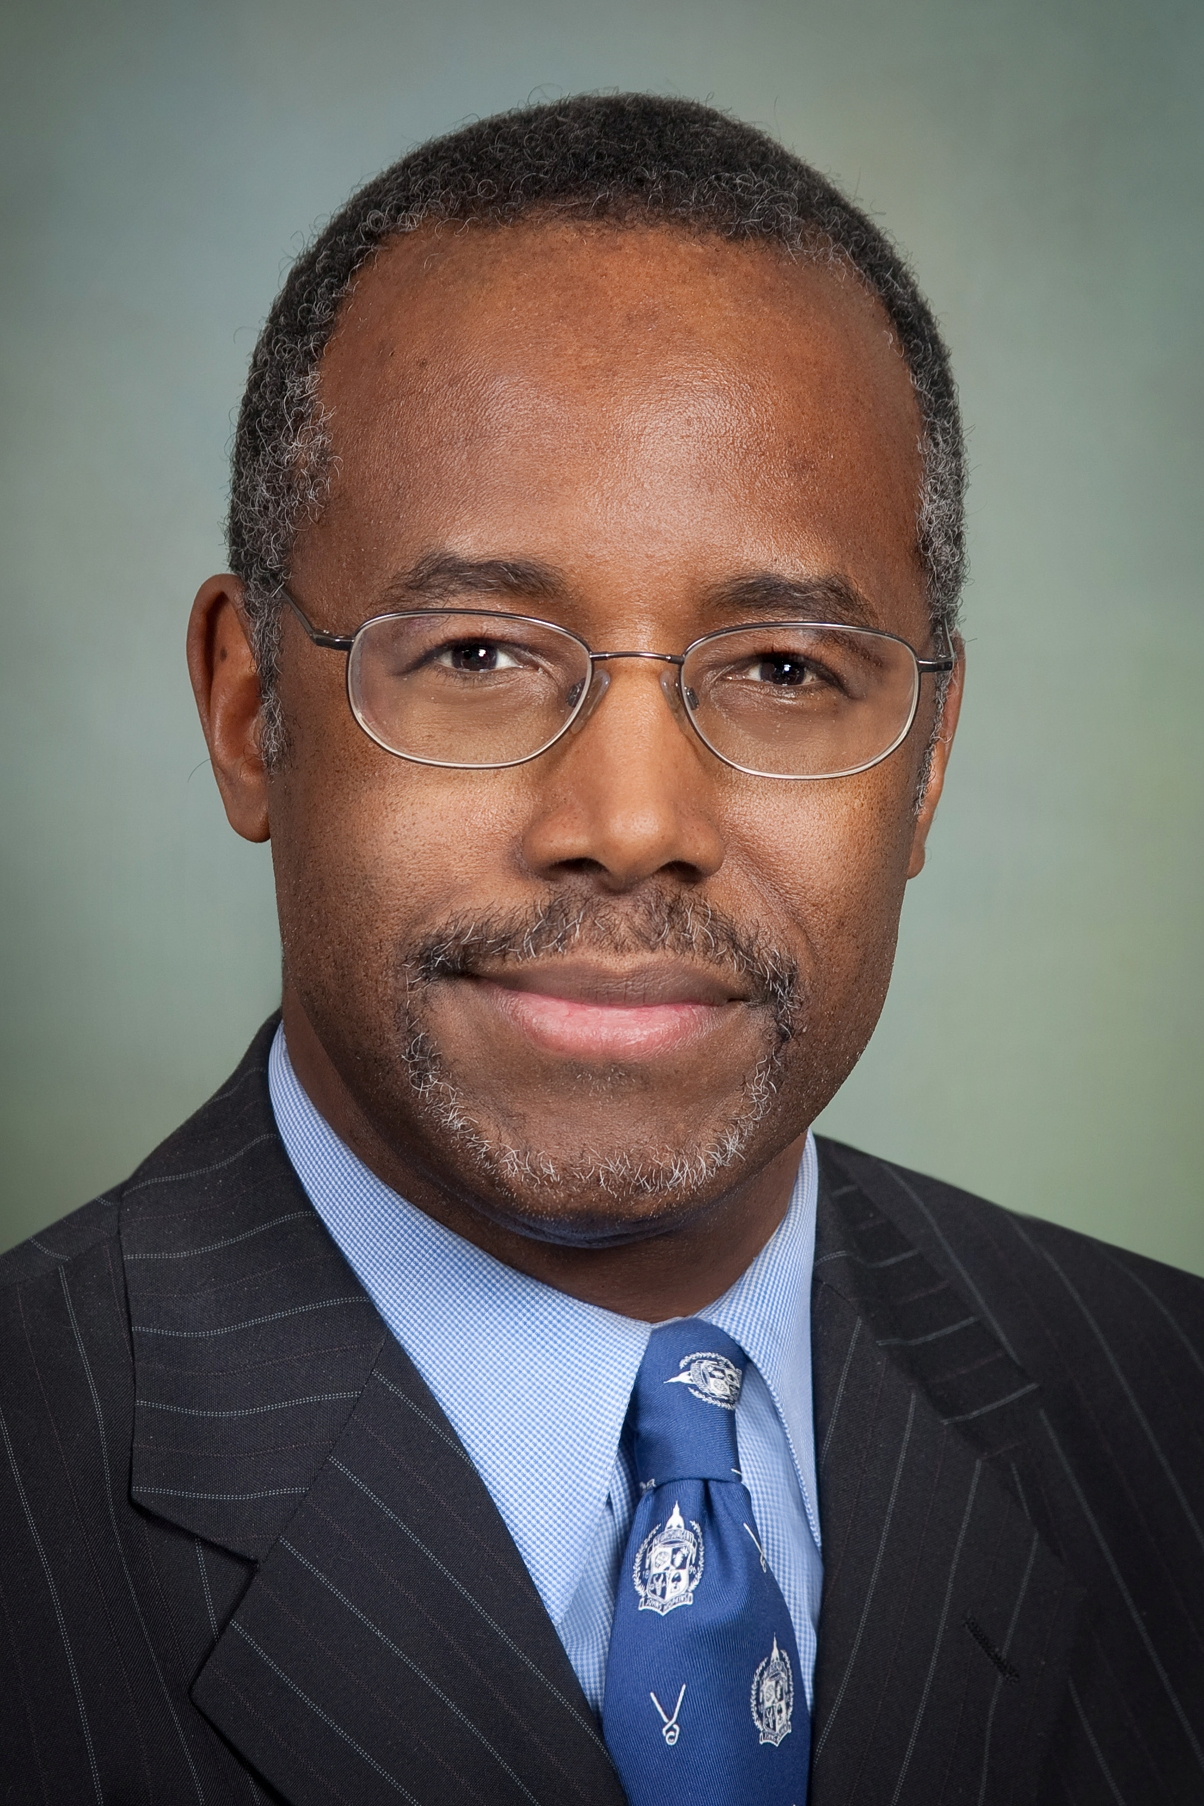 ben carson boyle county republican party